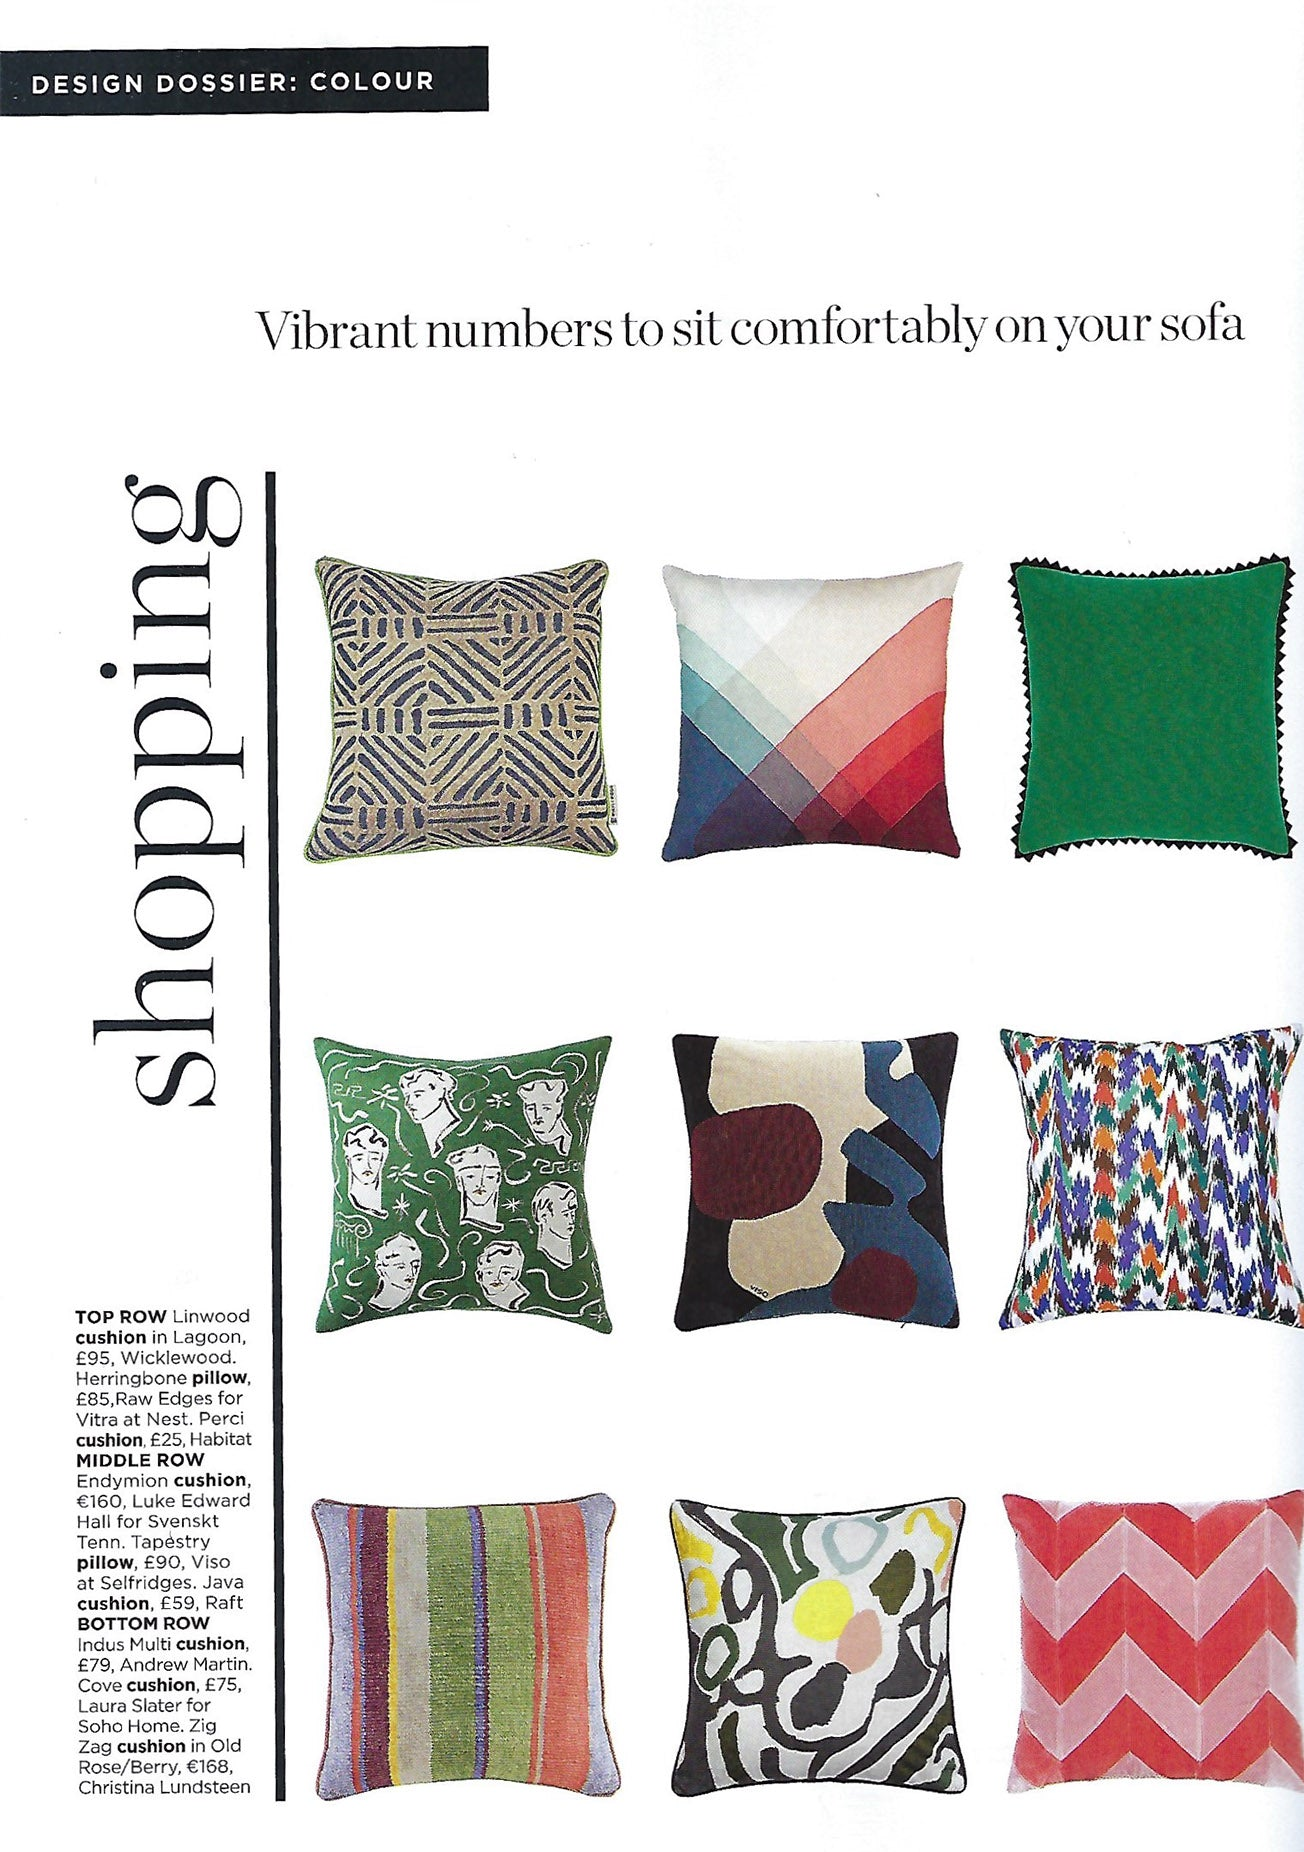 wicklewood linwood cushion featured in Living etc magazine